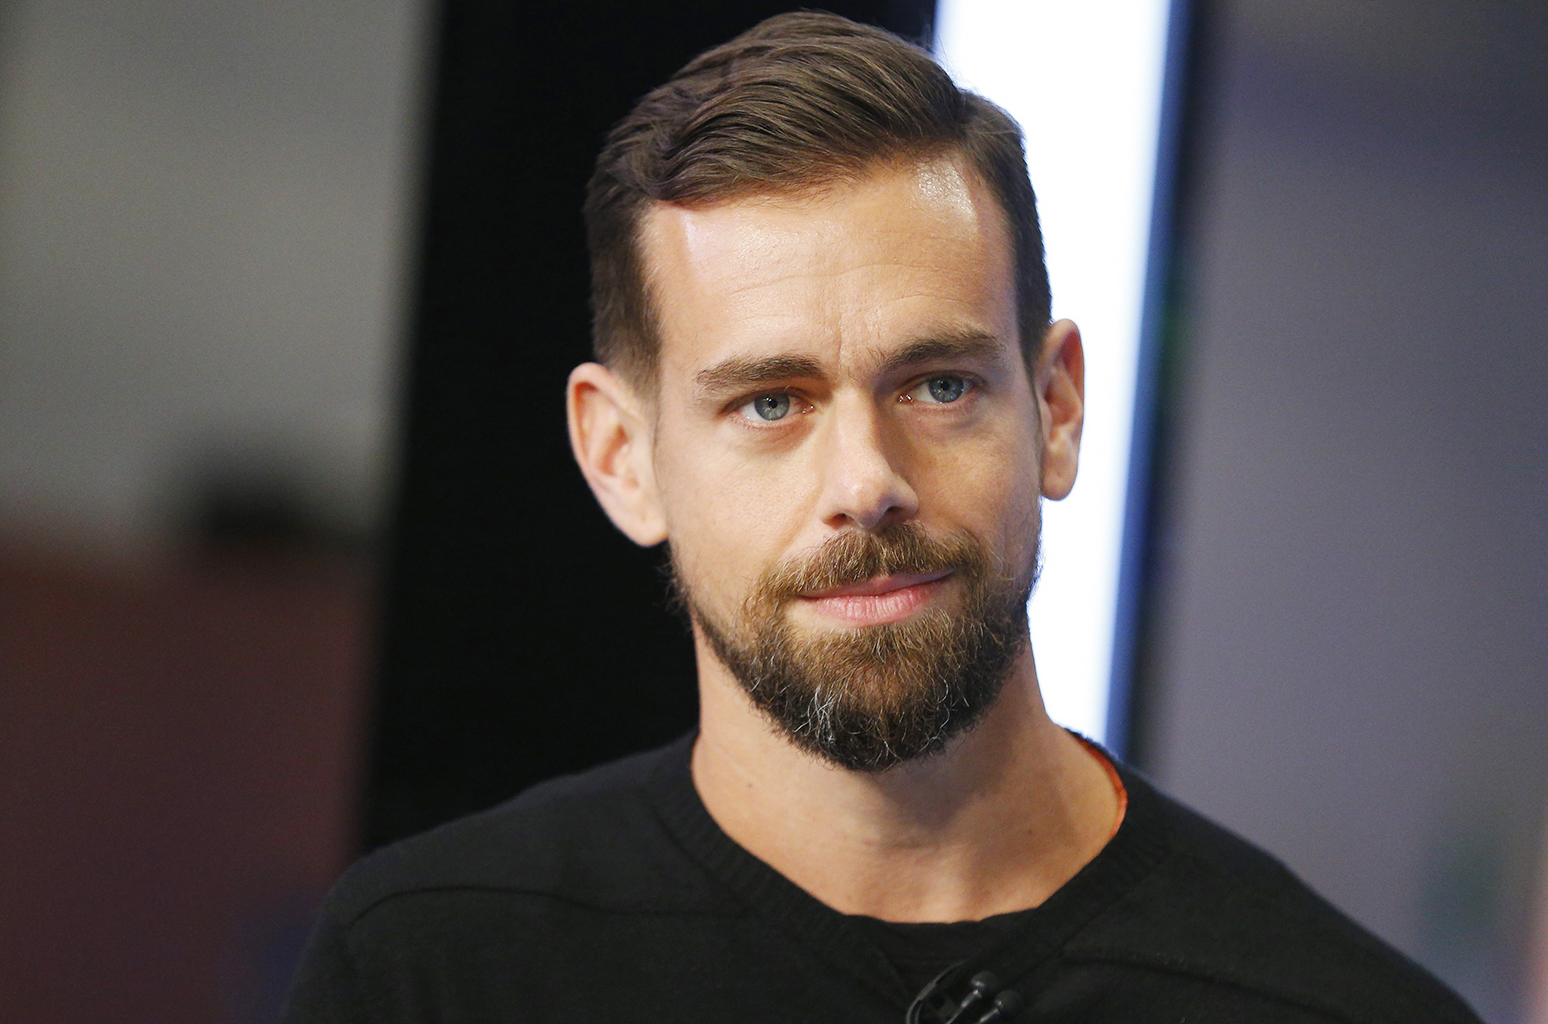 Square, Twitter CEO Jack Dorsey: Bitcoin 'Not Functional as a Currency'